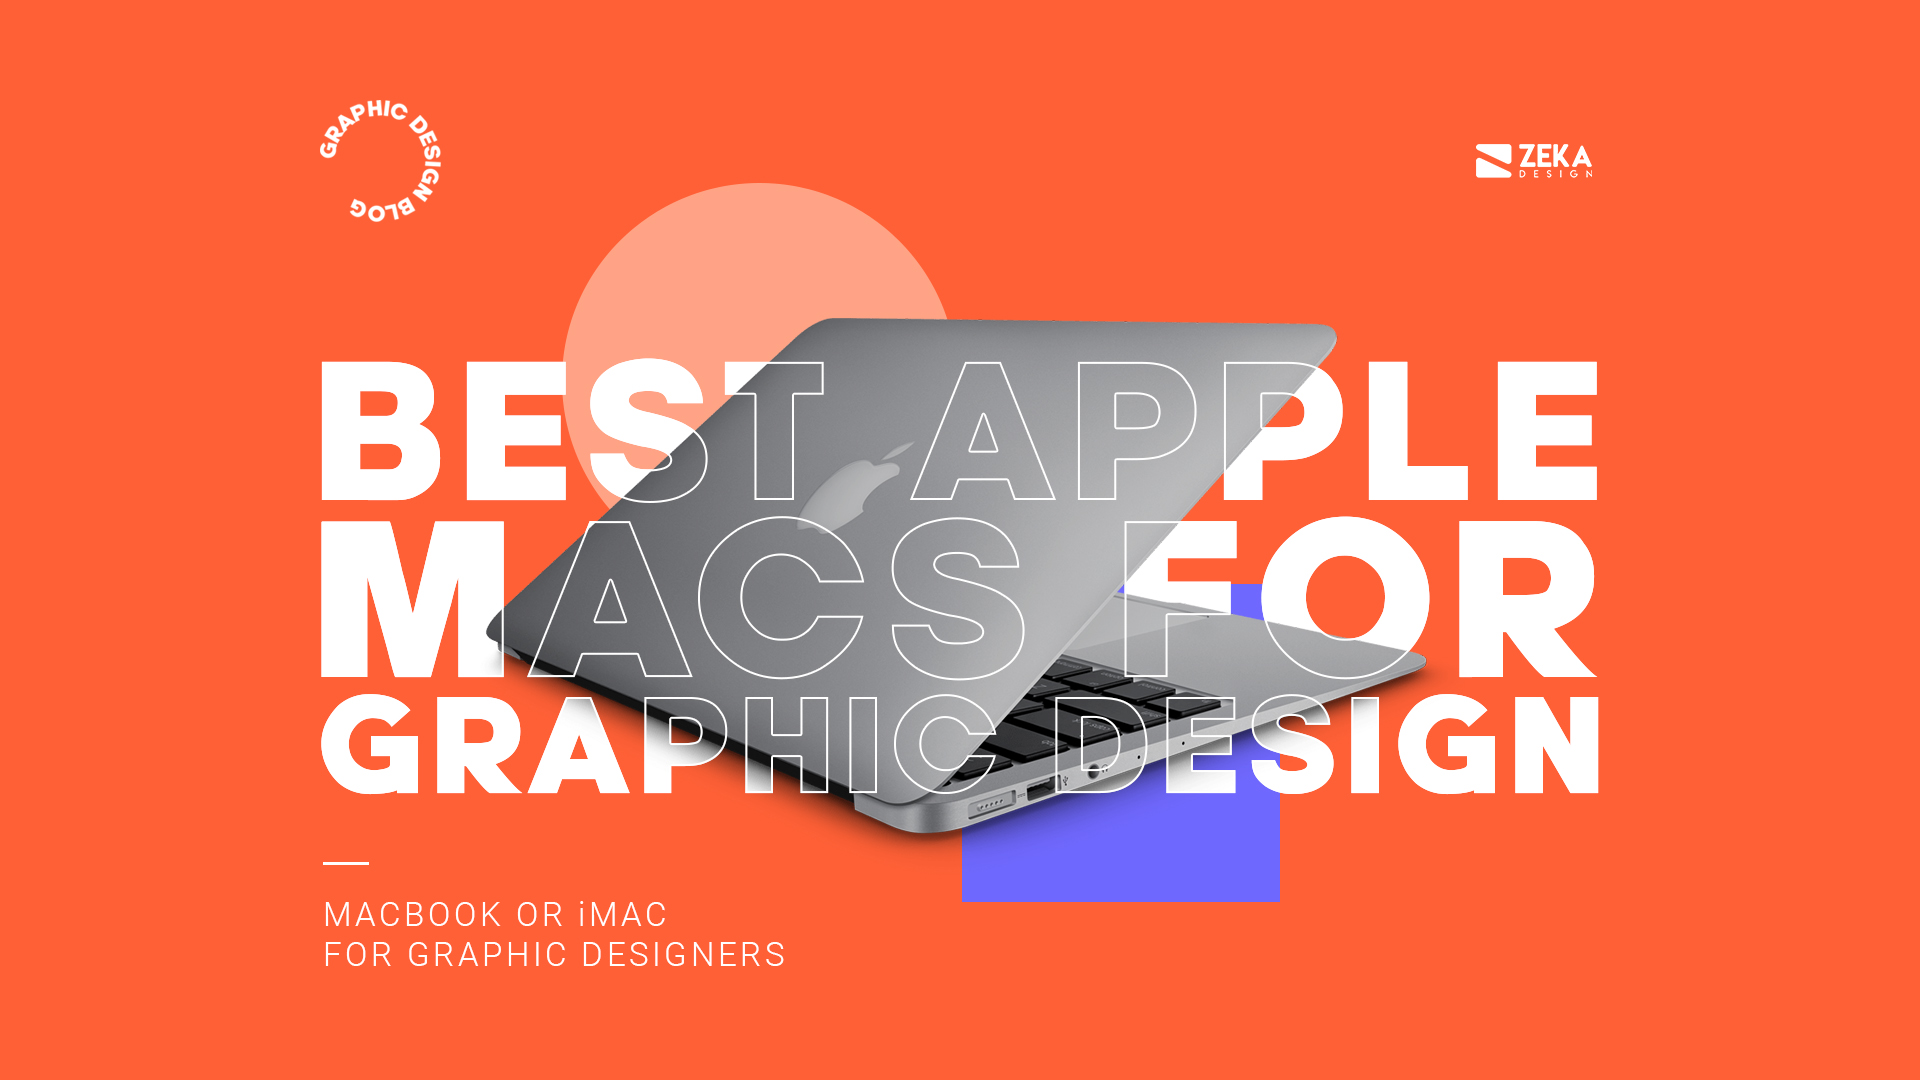 Best Apple Macs For Graphic Design and Logo Design